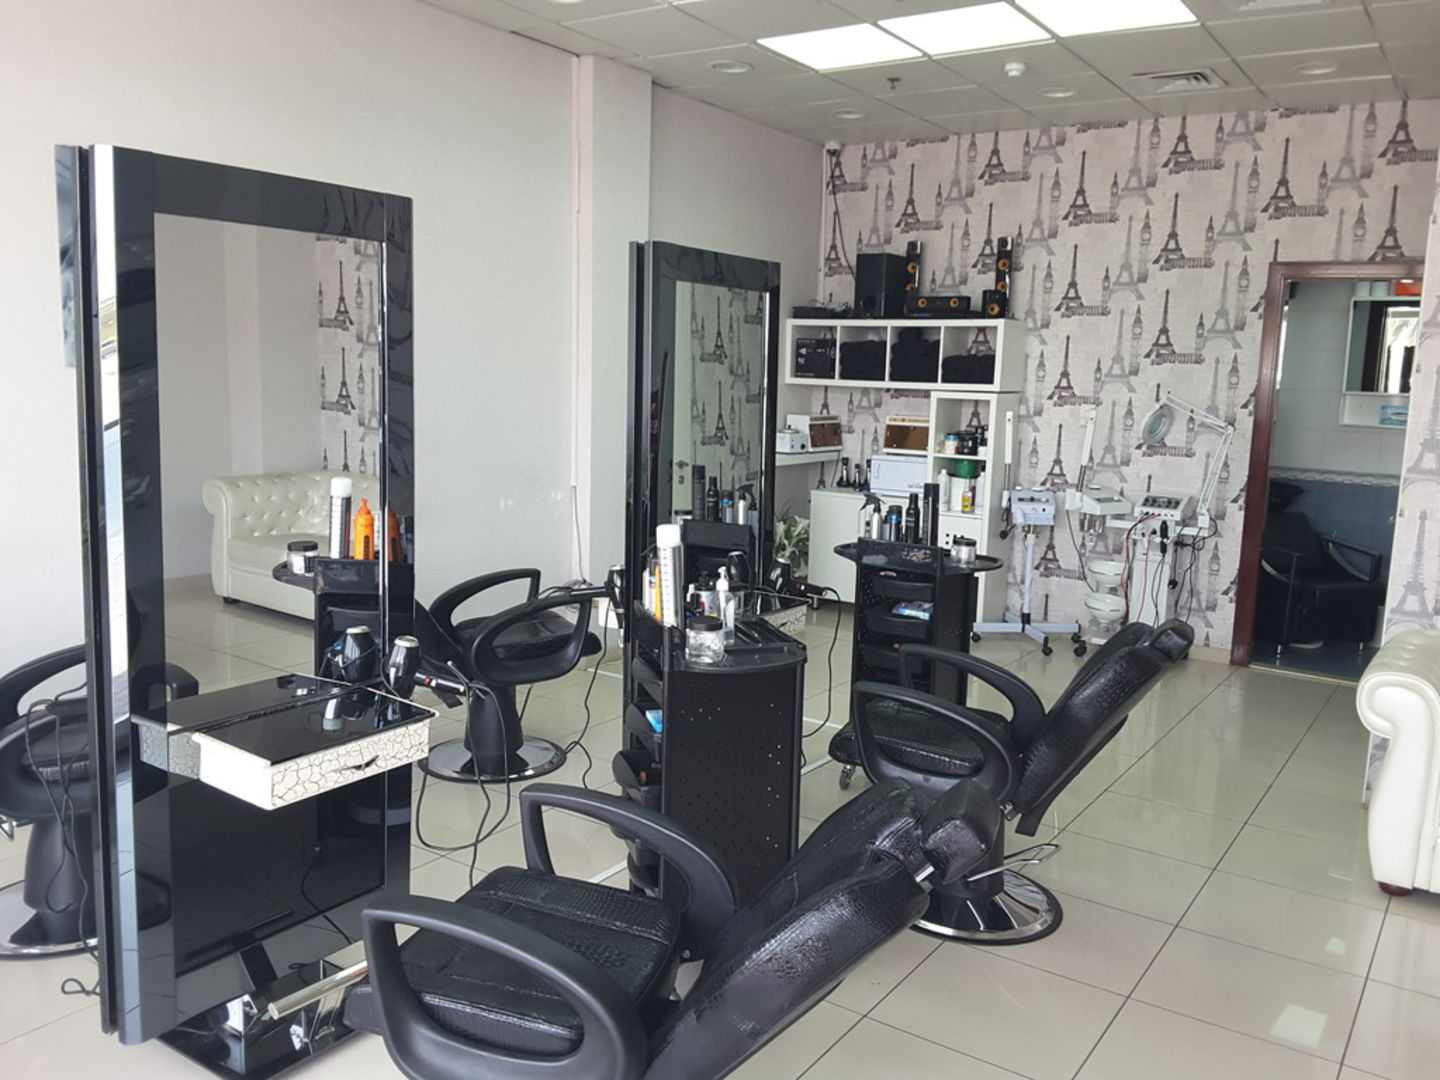 HiDubai-business-salon-millennium-beauty-wellness-health-beauty-salons-al-barsha-1-dubai